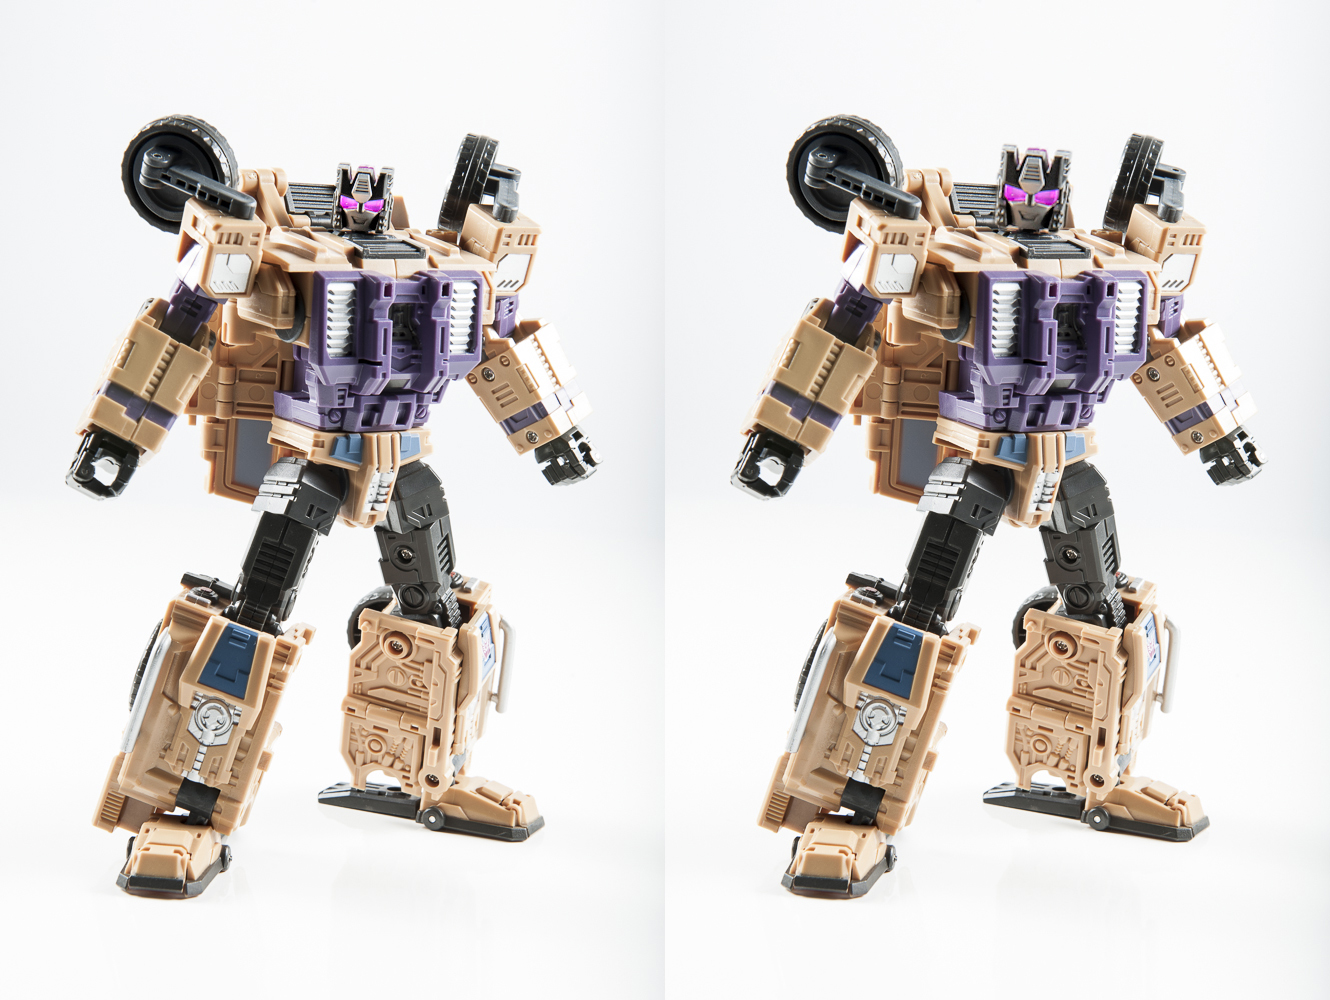 transformers masterpiece swindle combaticon g1 bruticus decepticon warbotron sly strike combiner gestalt combaticons big head